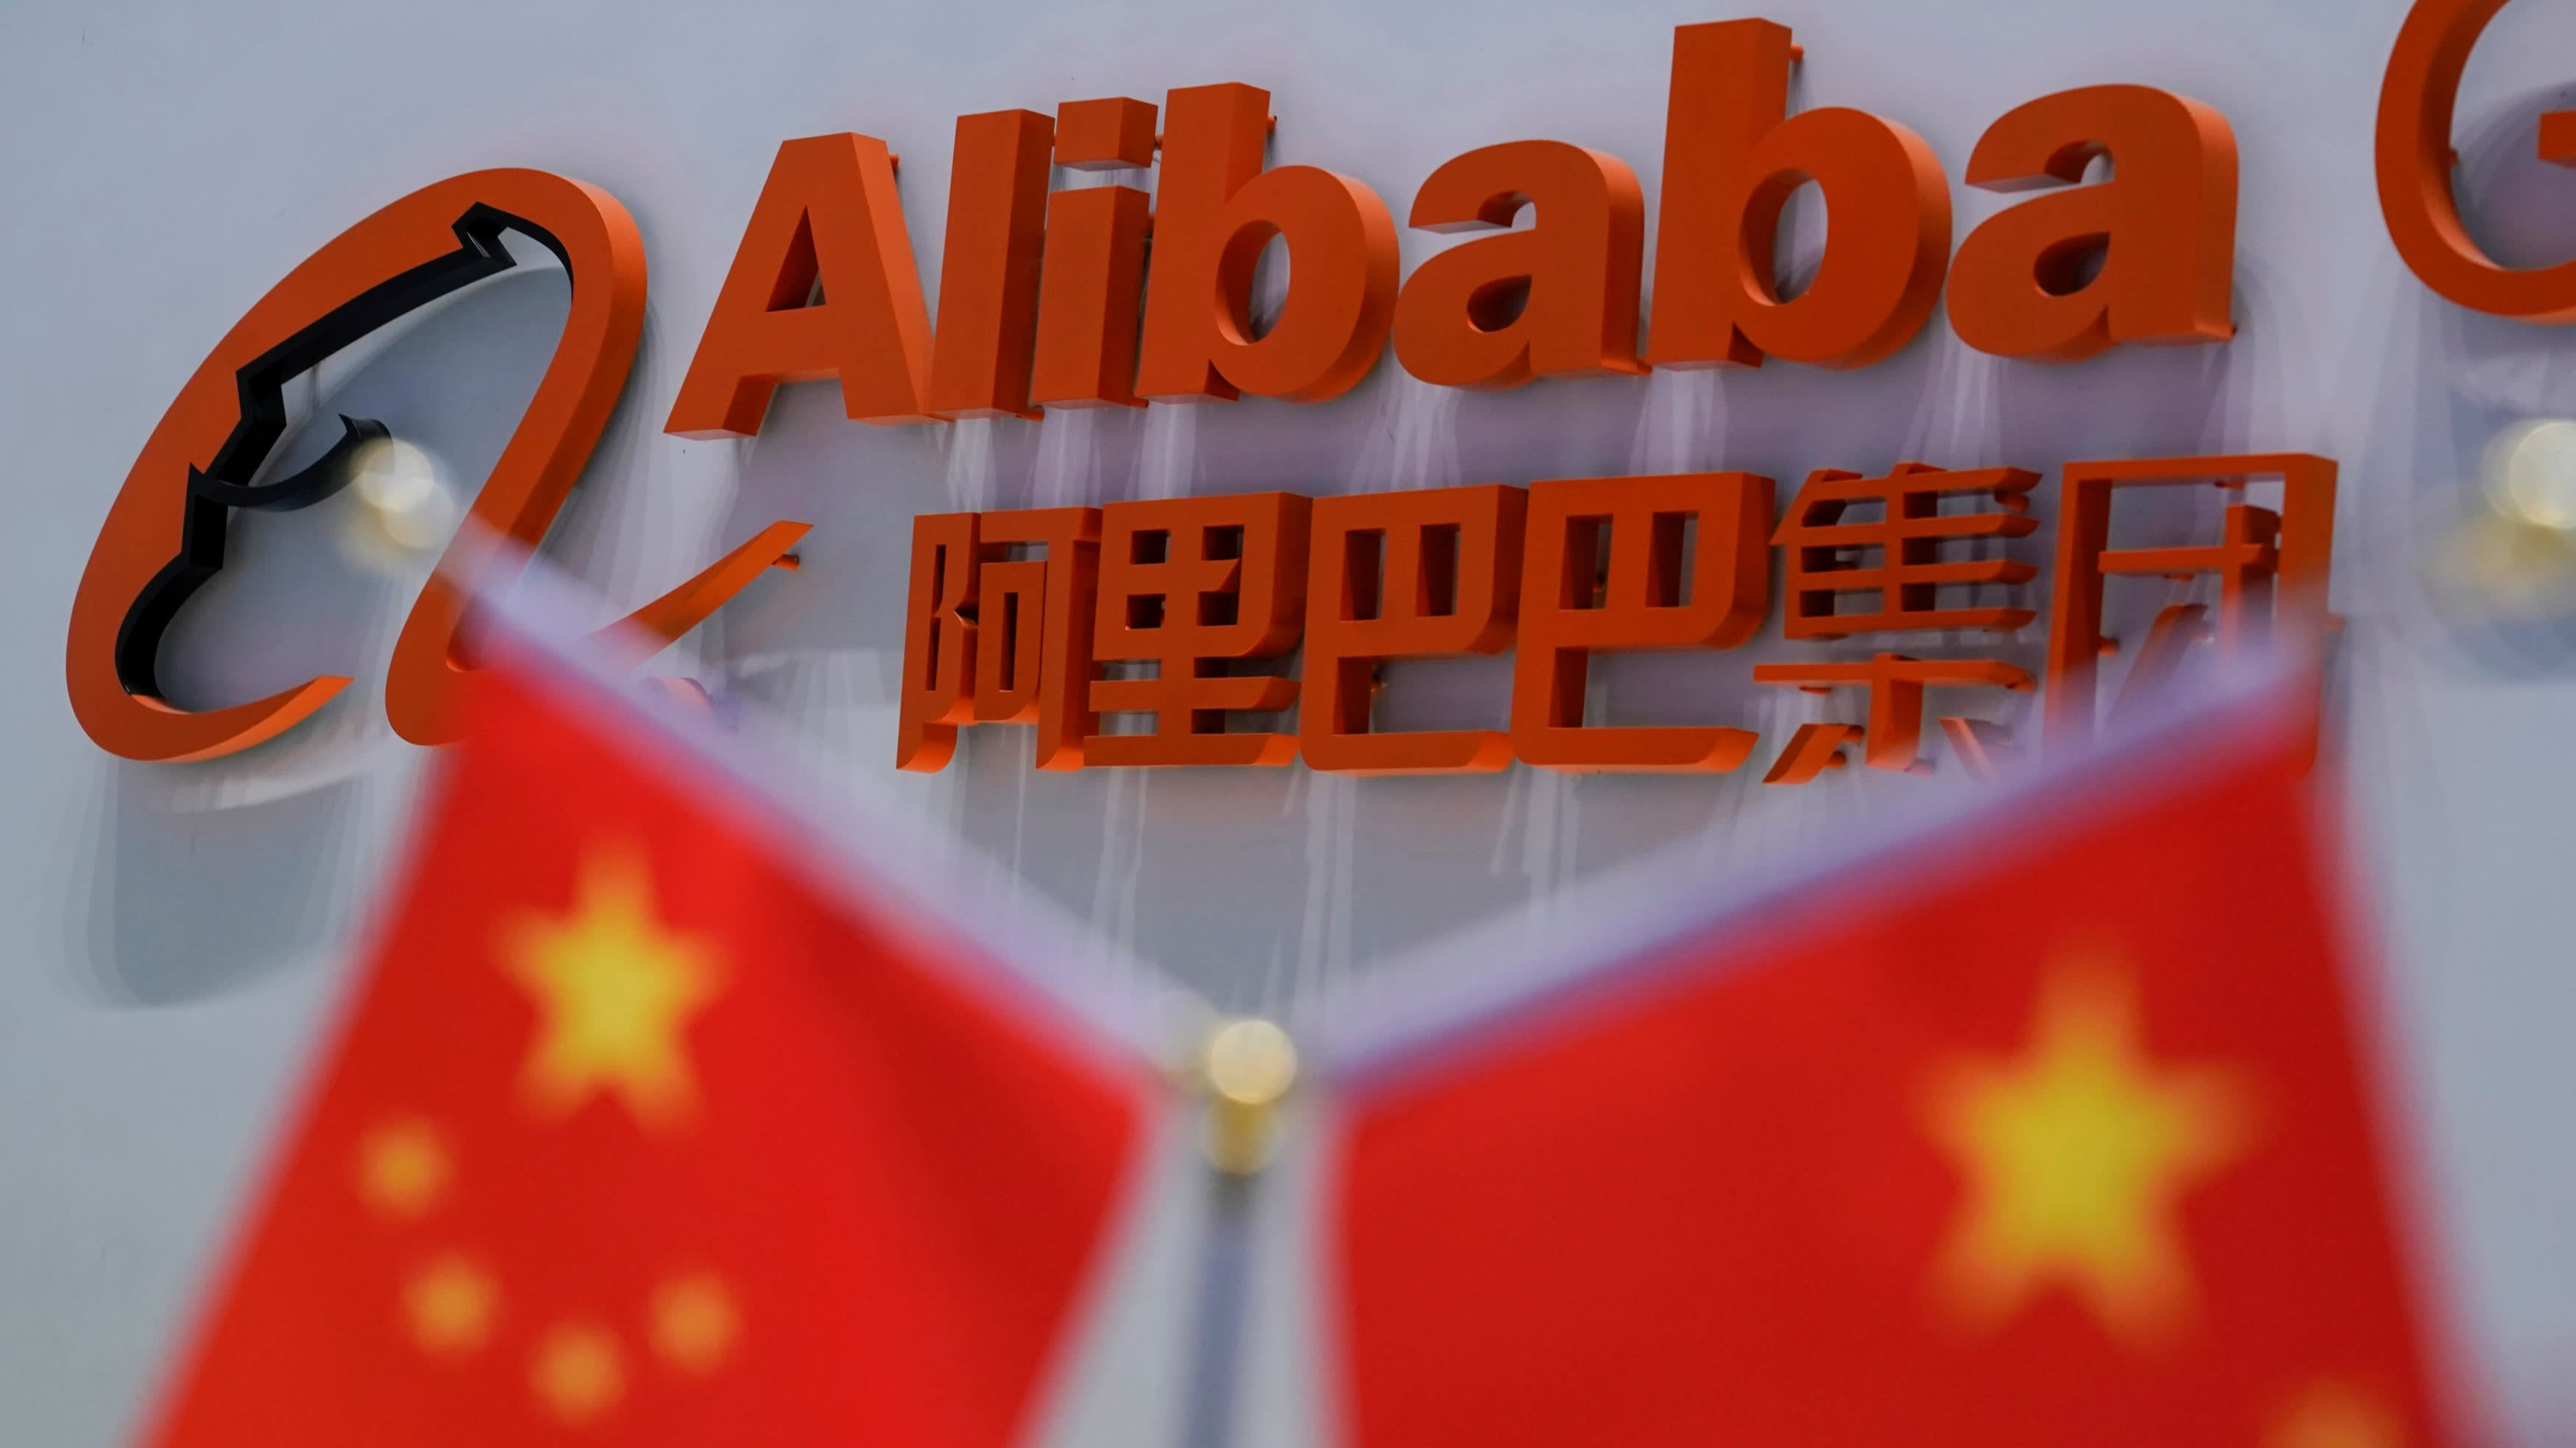 As Trump ban looms, Alibaba bounces back to pre-COVID form - Nikkei Asia